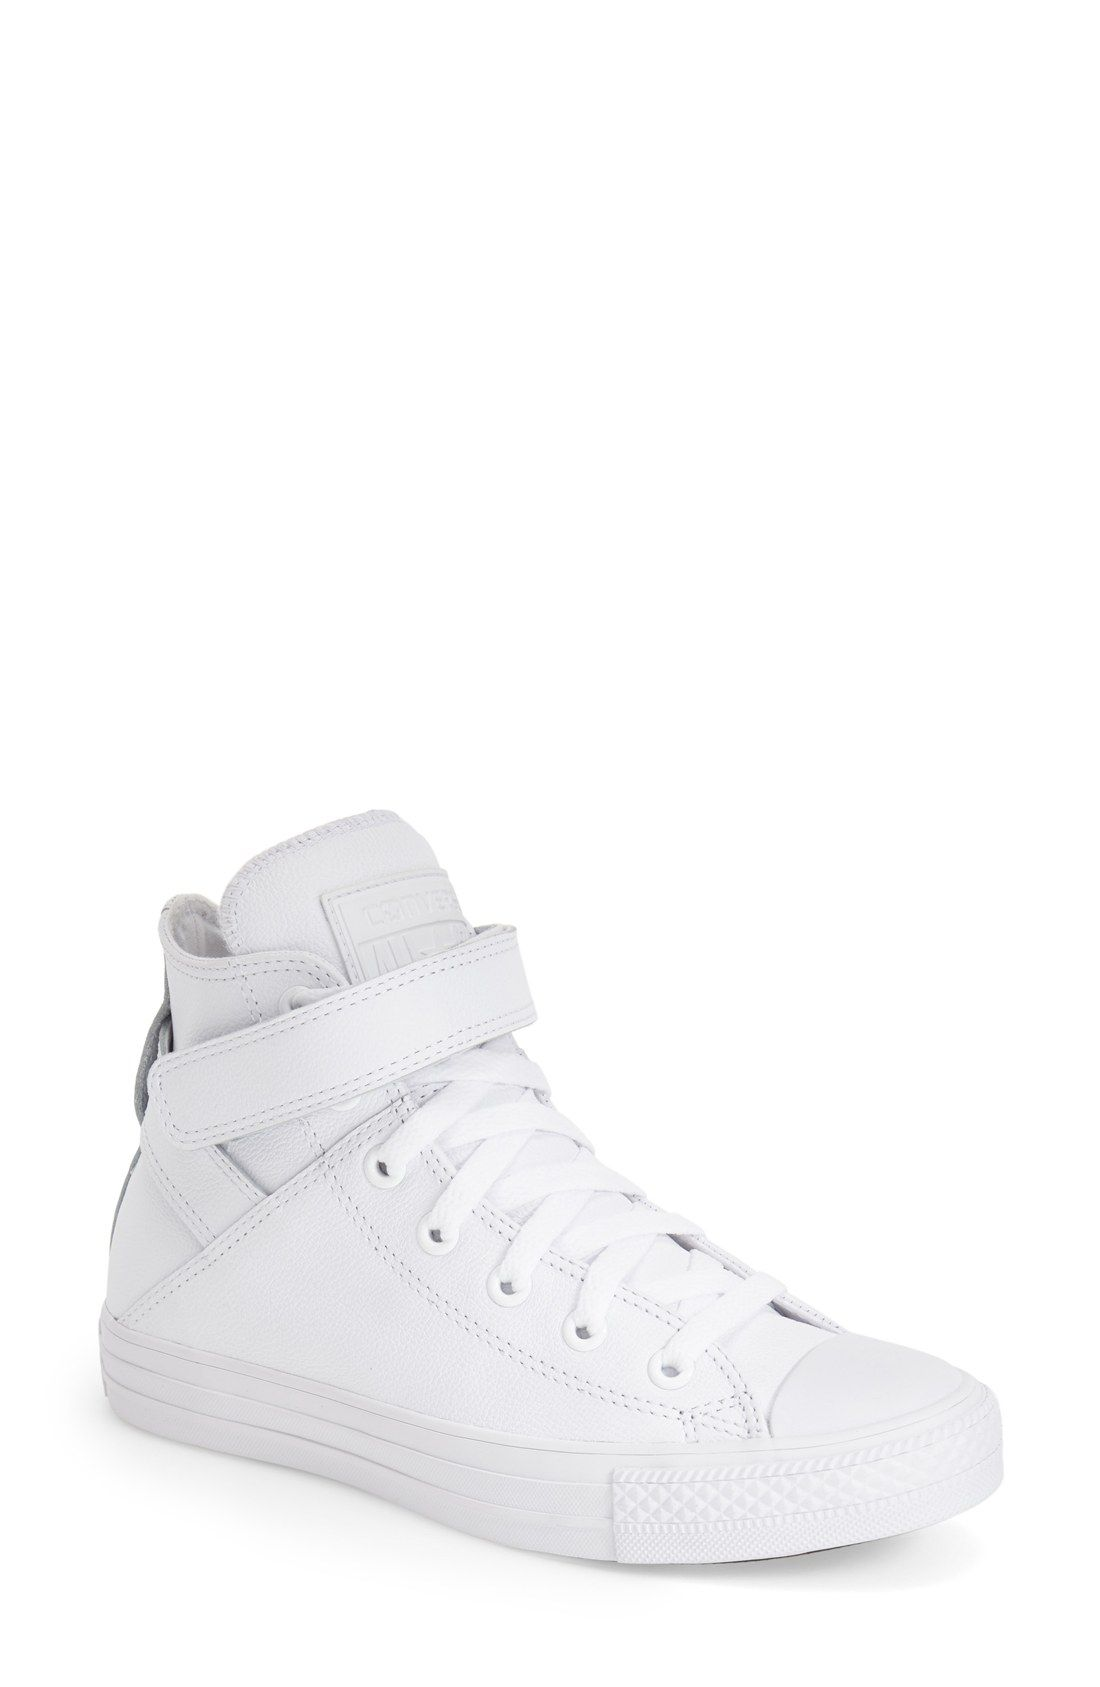 Converse Chuck Taylor® All Star® 'Brea' Leather High Top Sneaker (Women